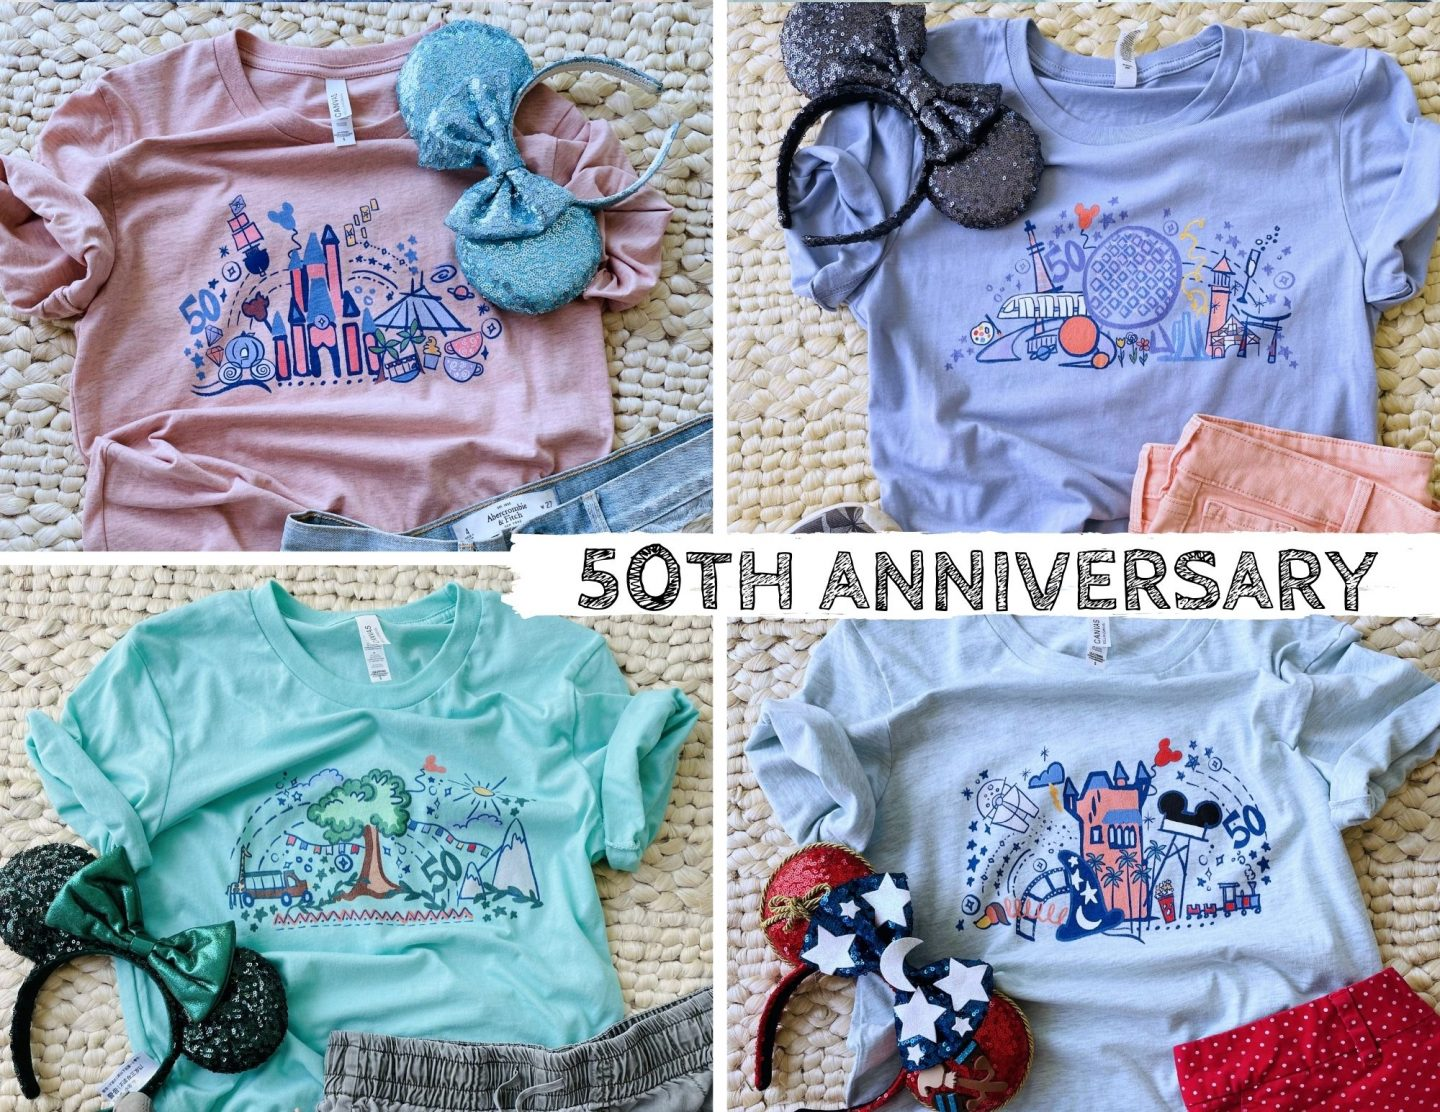 Disney's 50th Anniversary Collection